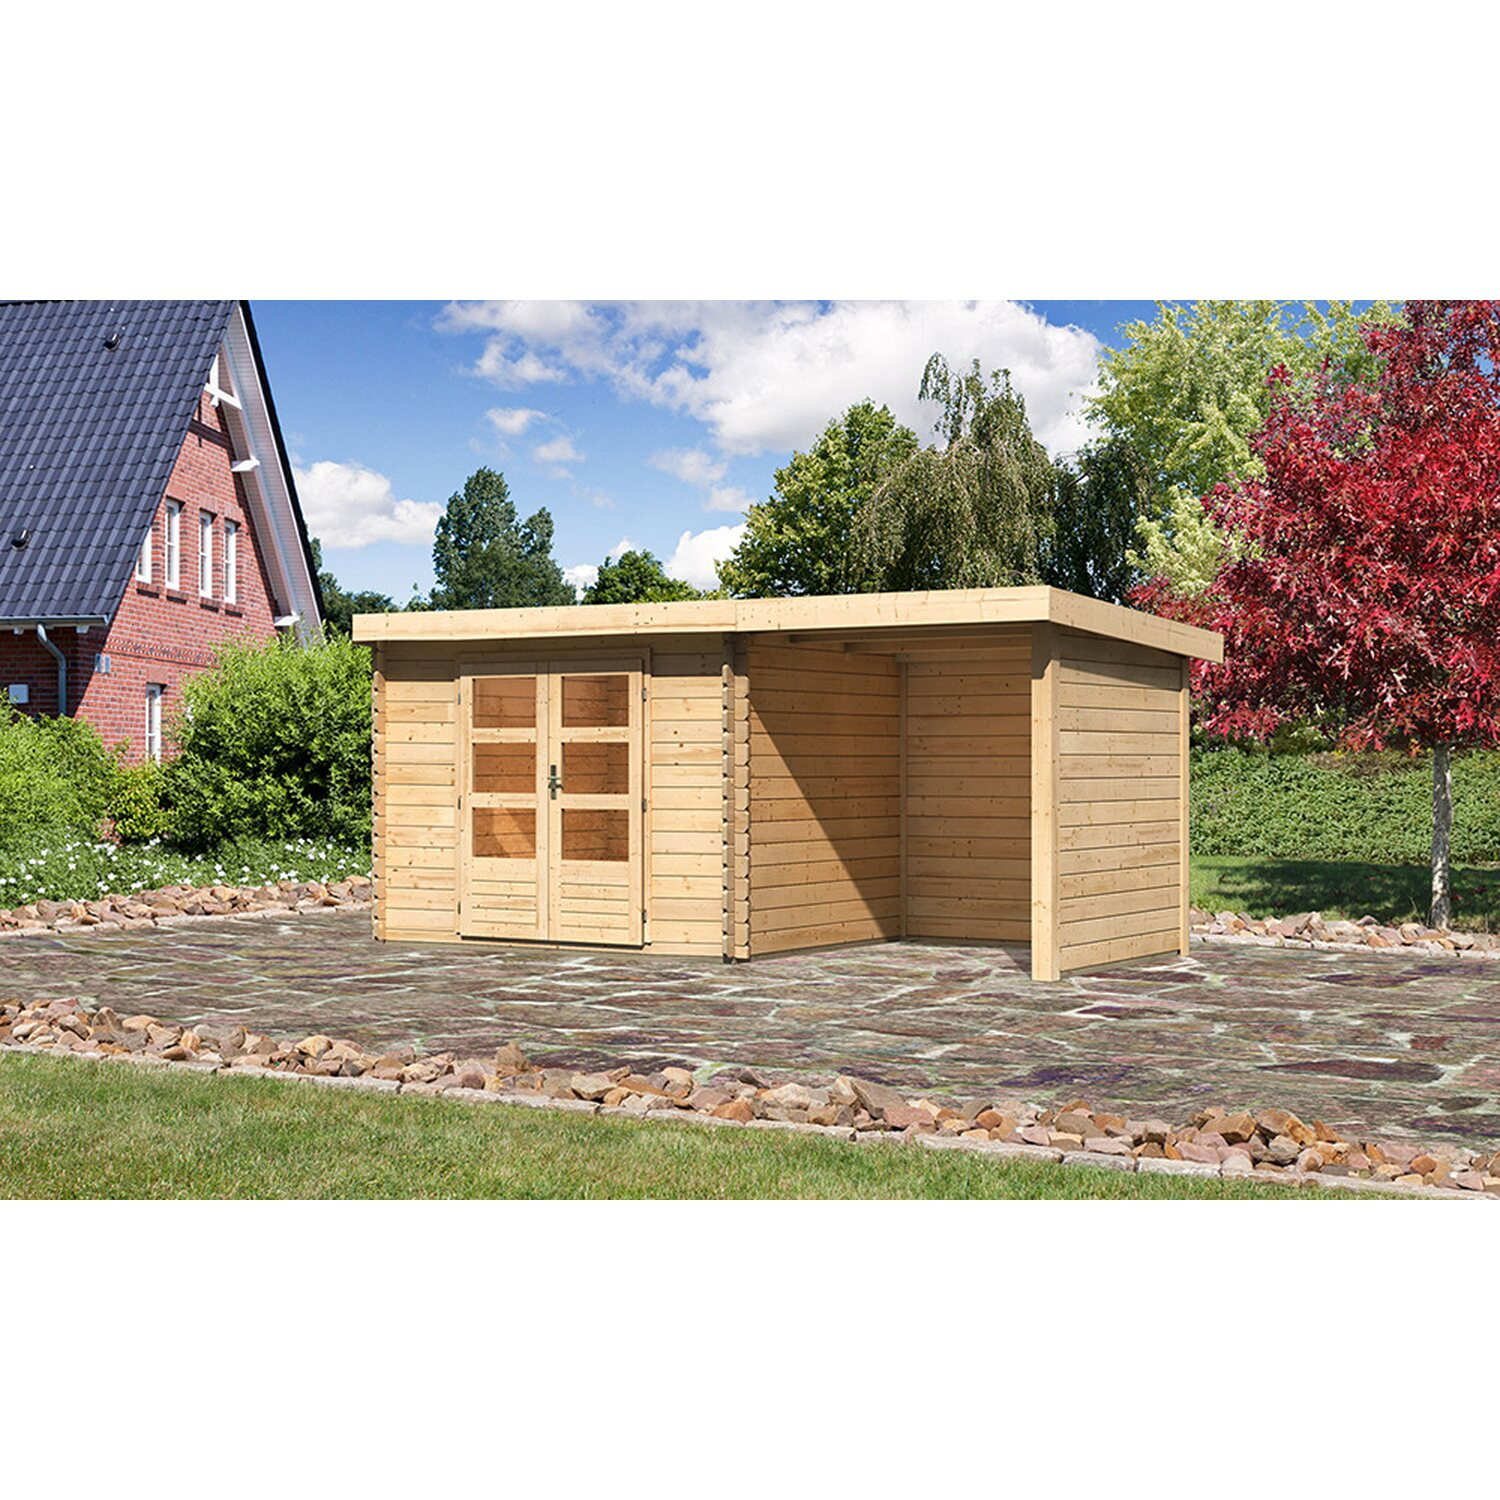 holz gartenhaus ngelholm 3 natur set mit seiten. Black Bedroom Furniture Sets. Home Design Ideas